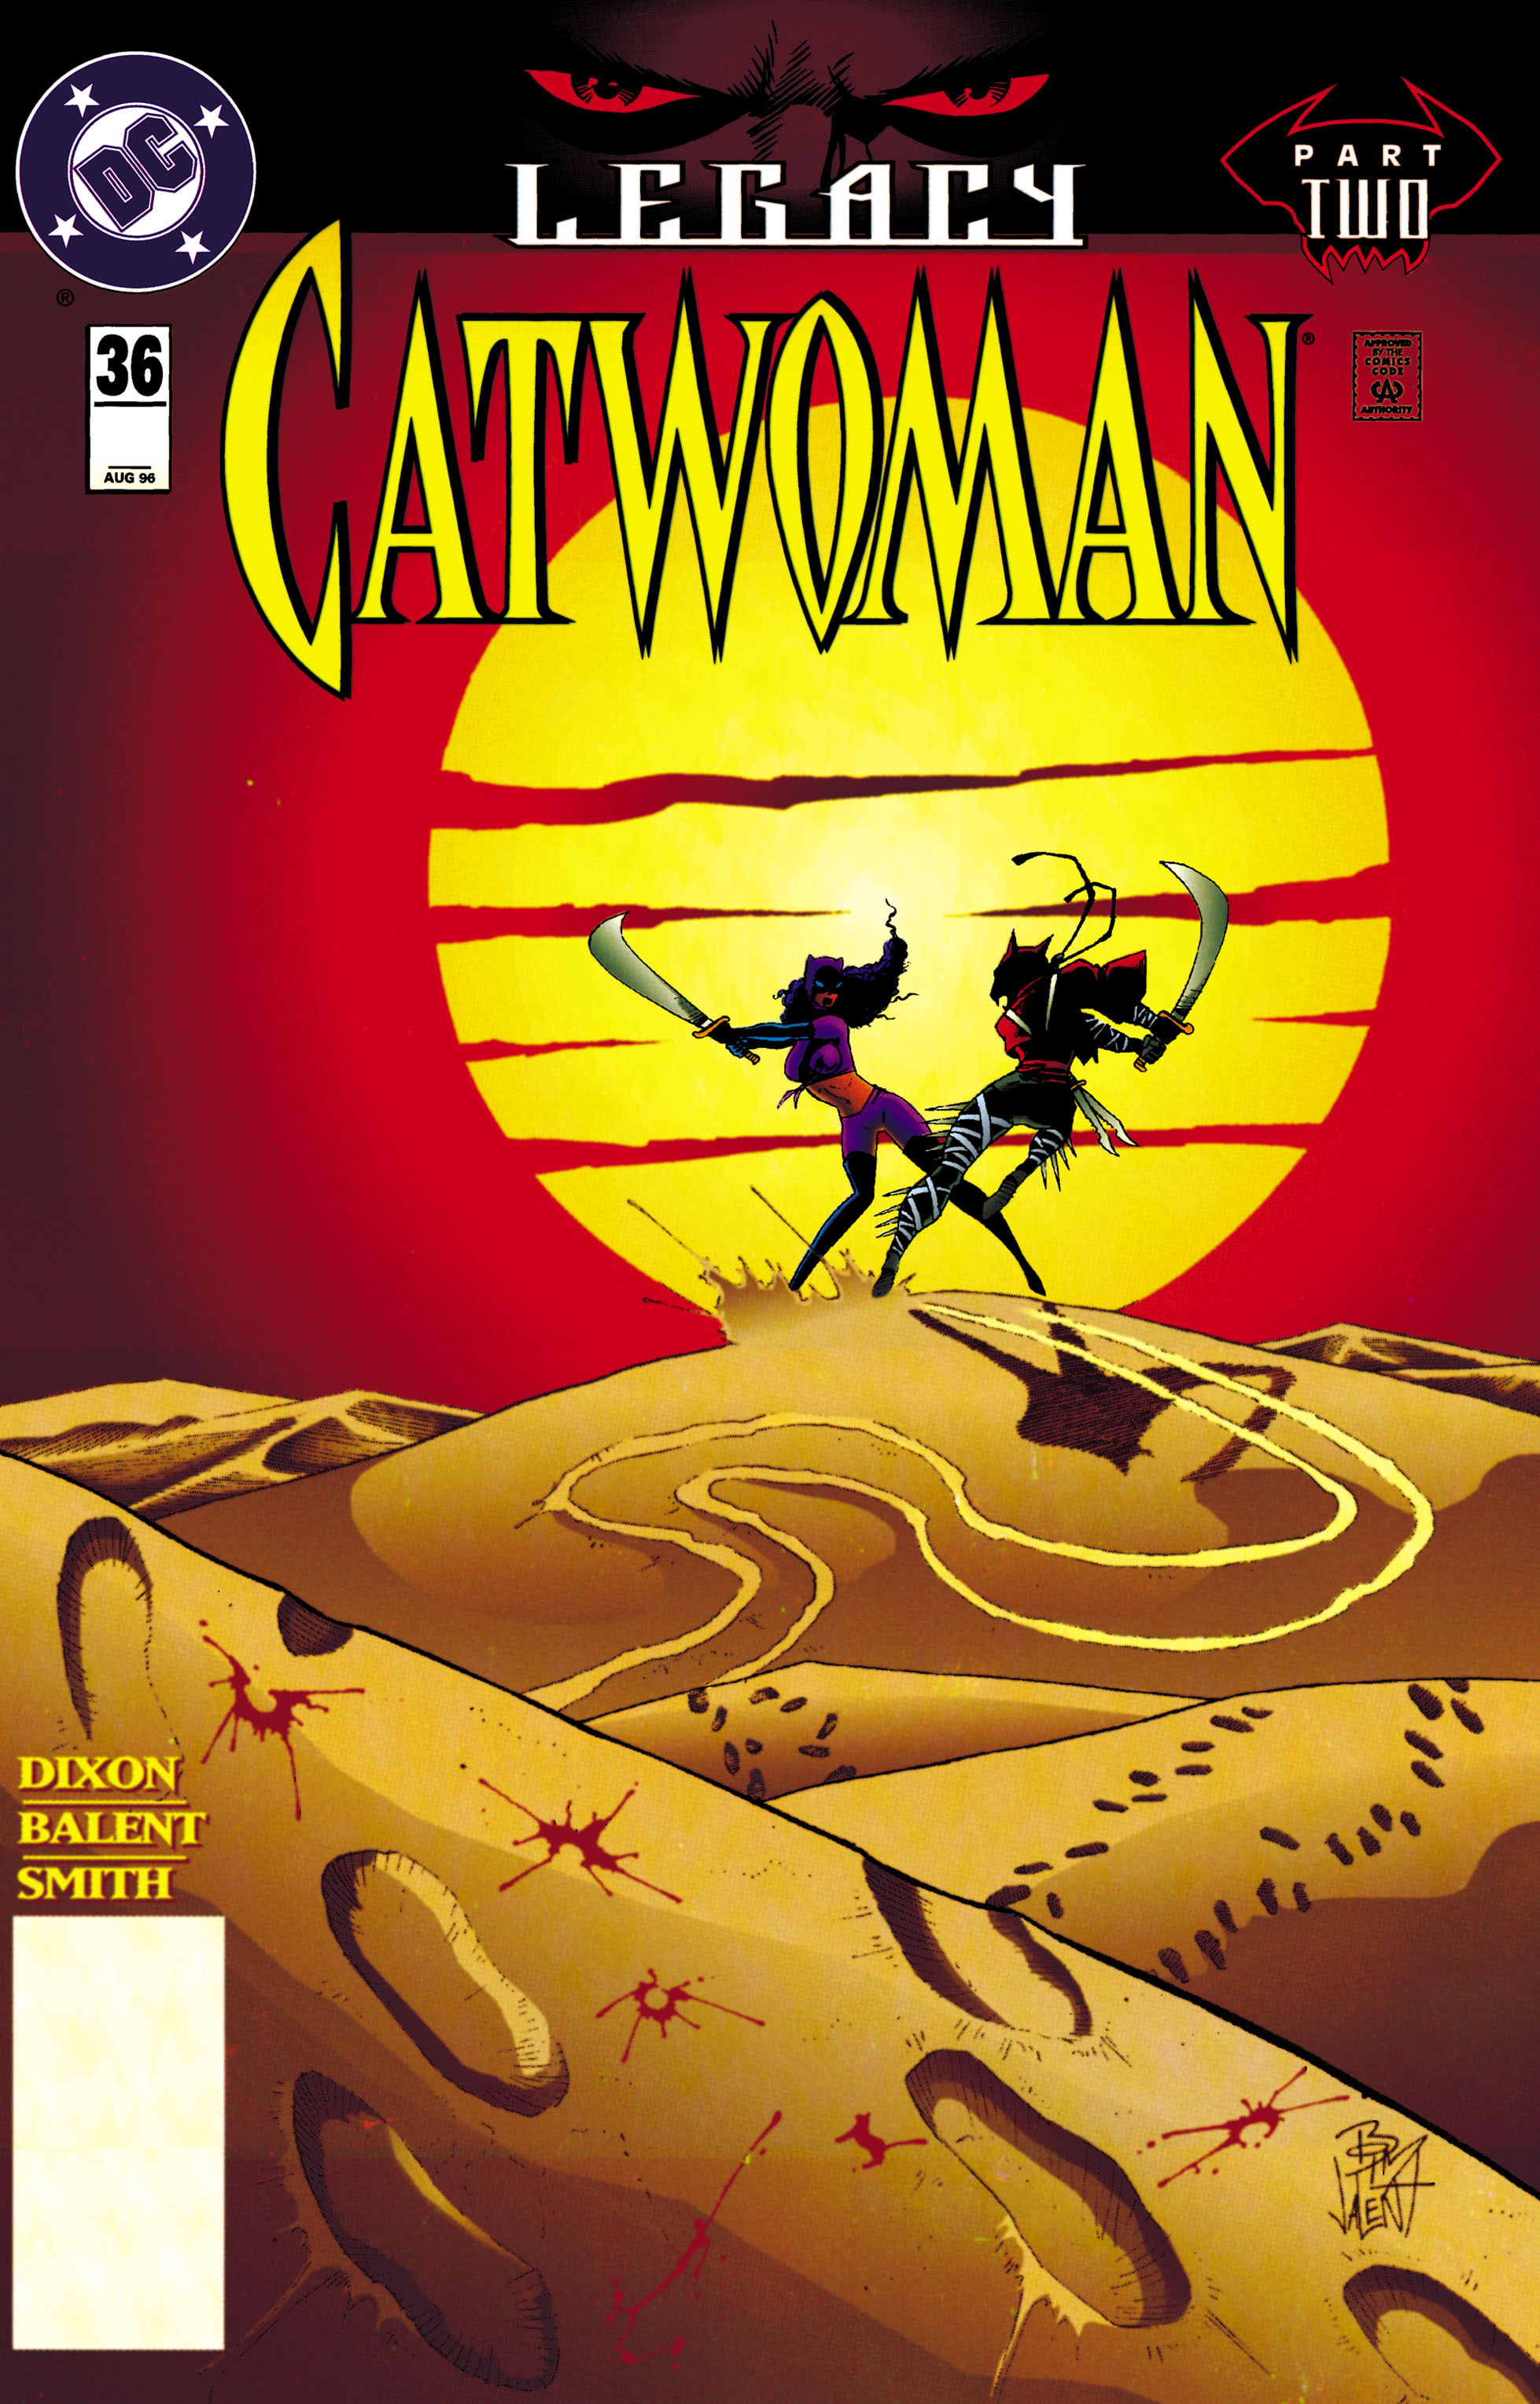 Catwoman (1993) Issue #36 #41 - English 1